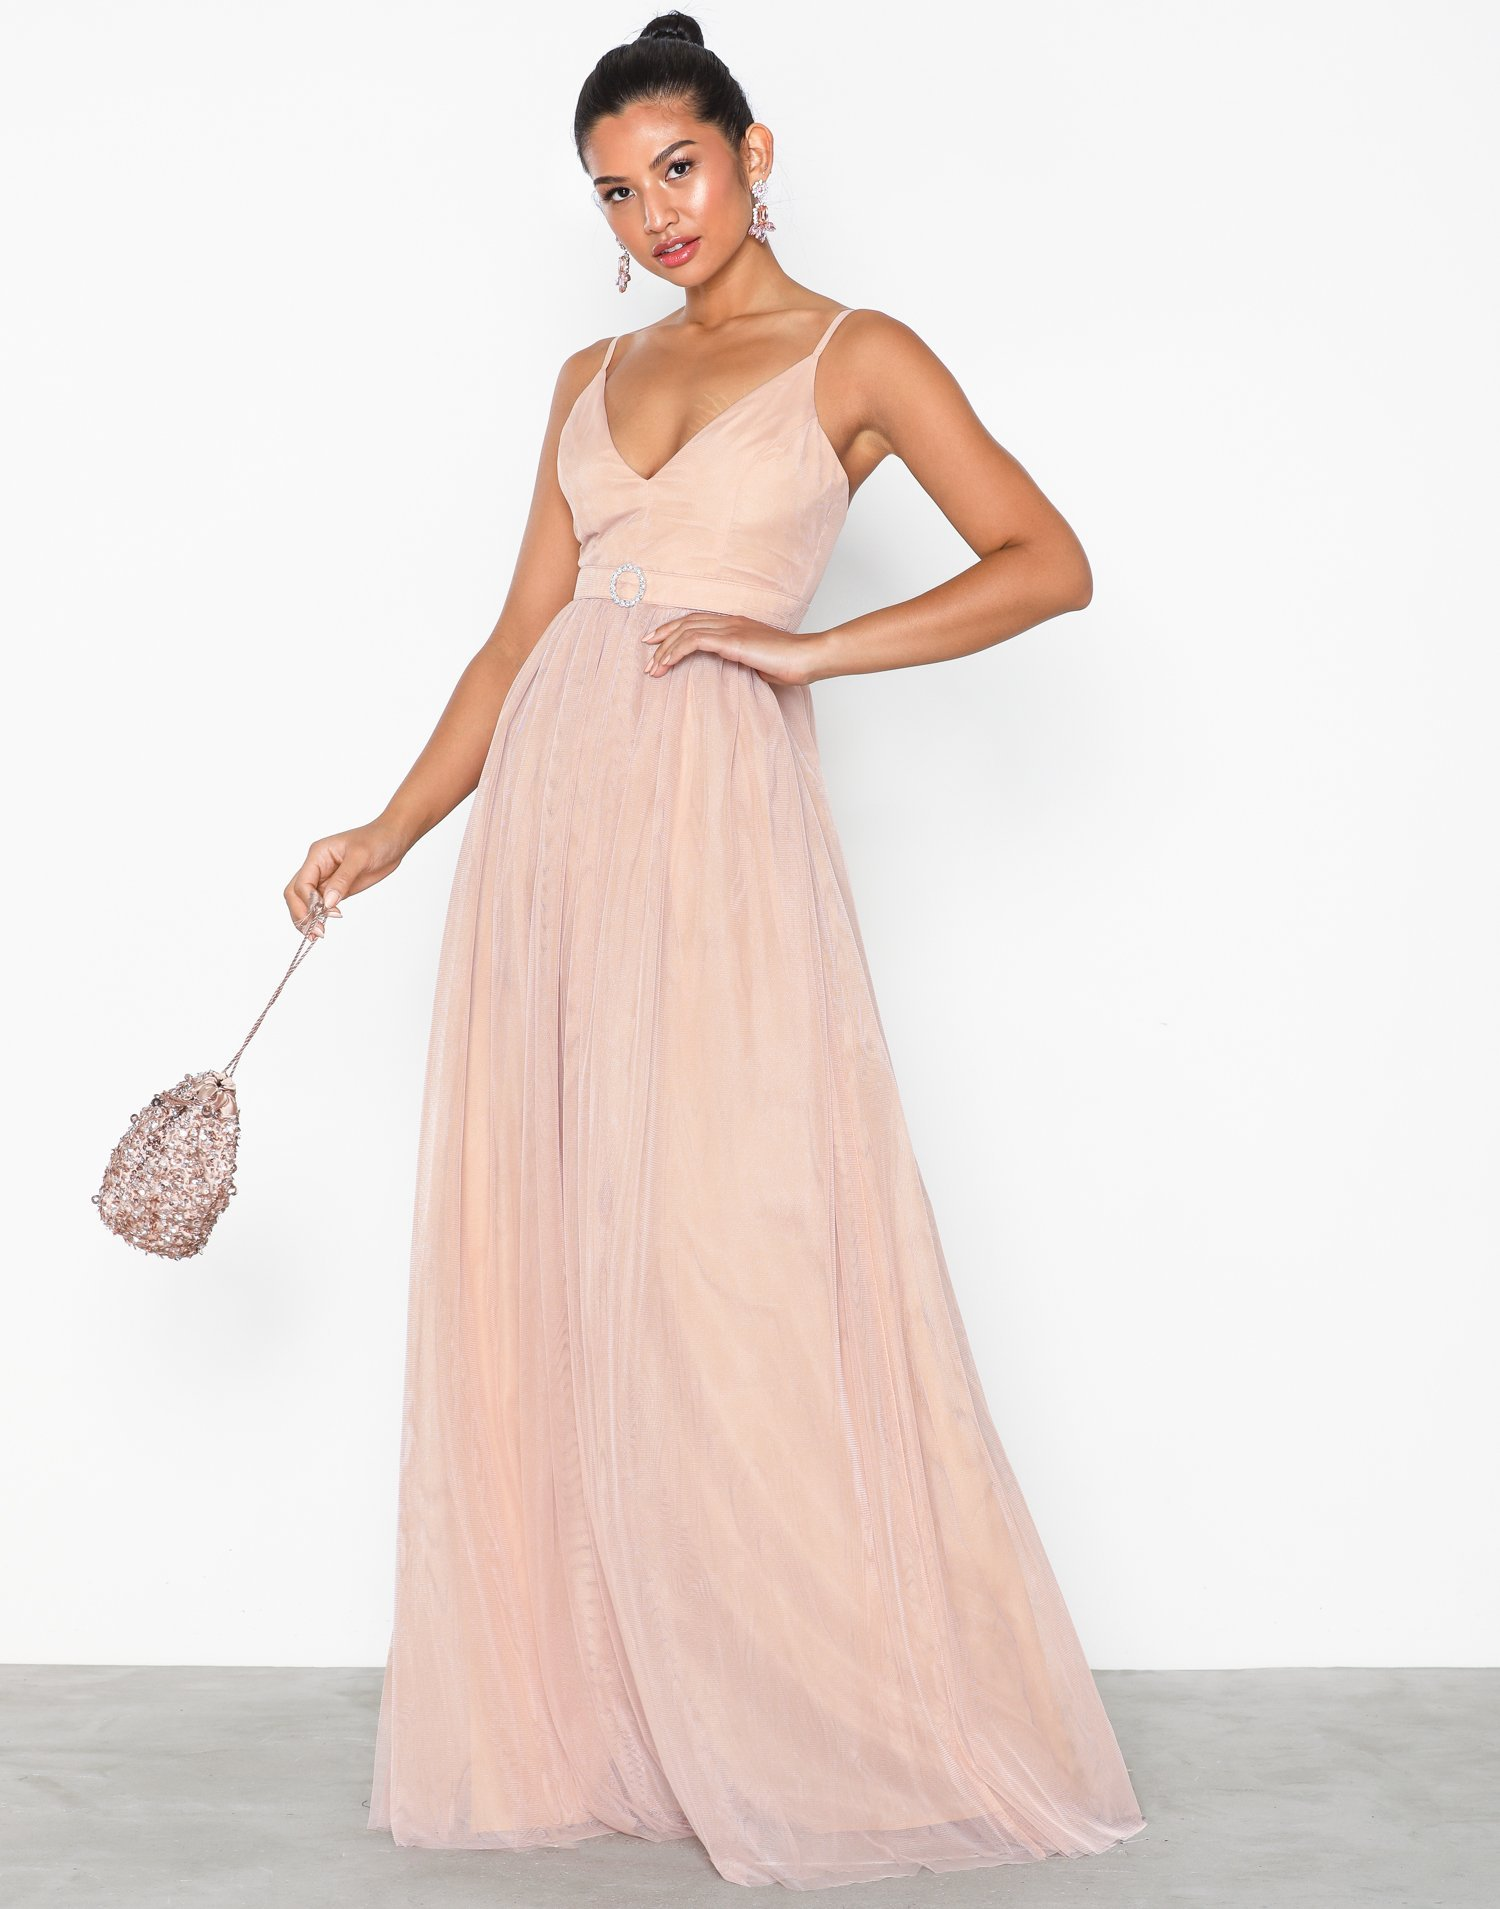 Ballerina Mesh Gown by Nly Eve